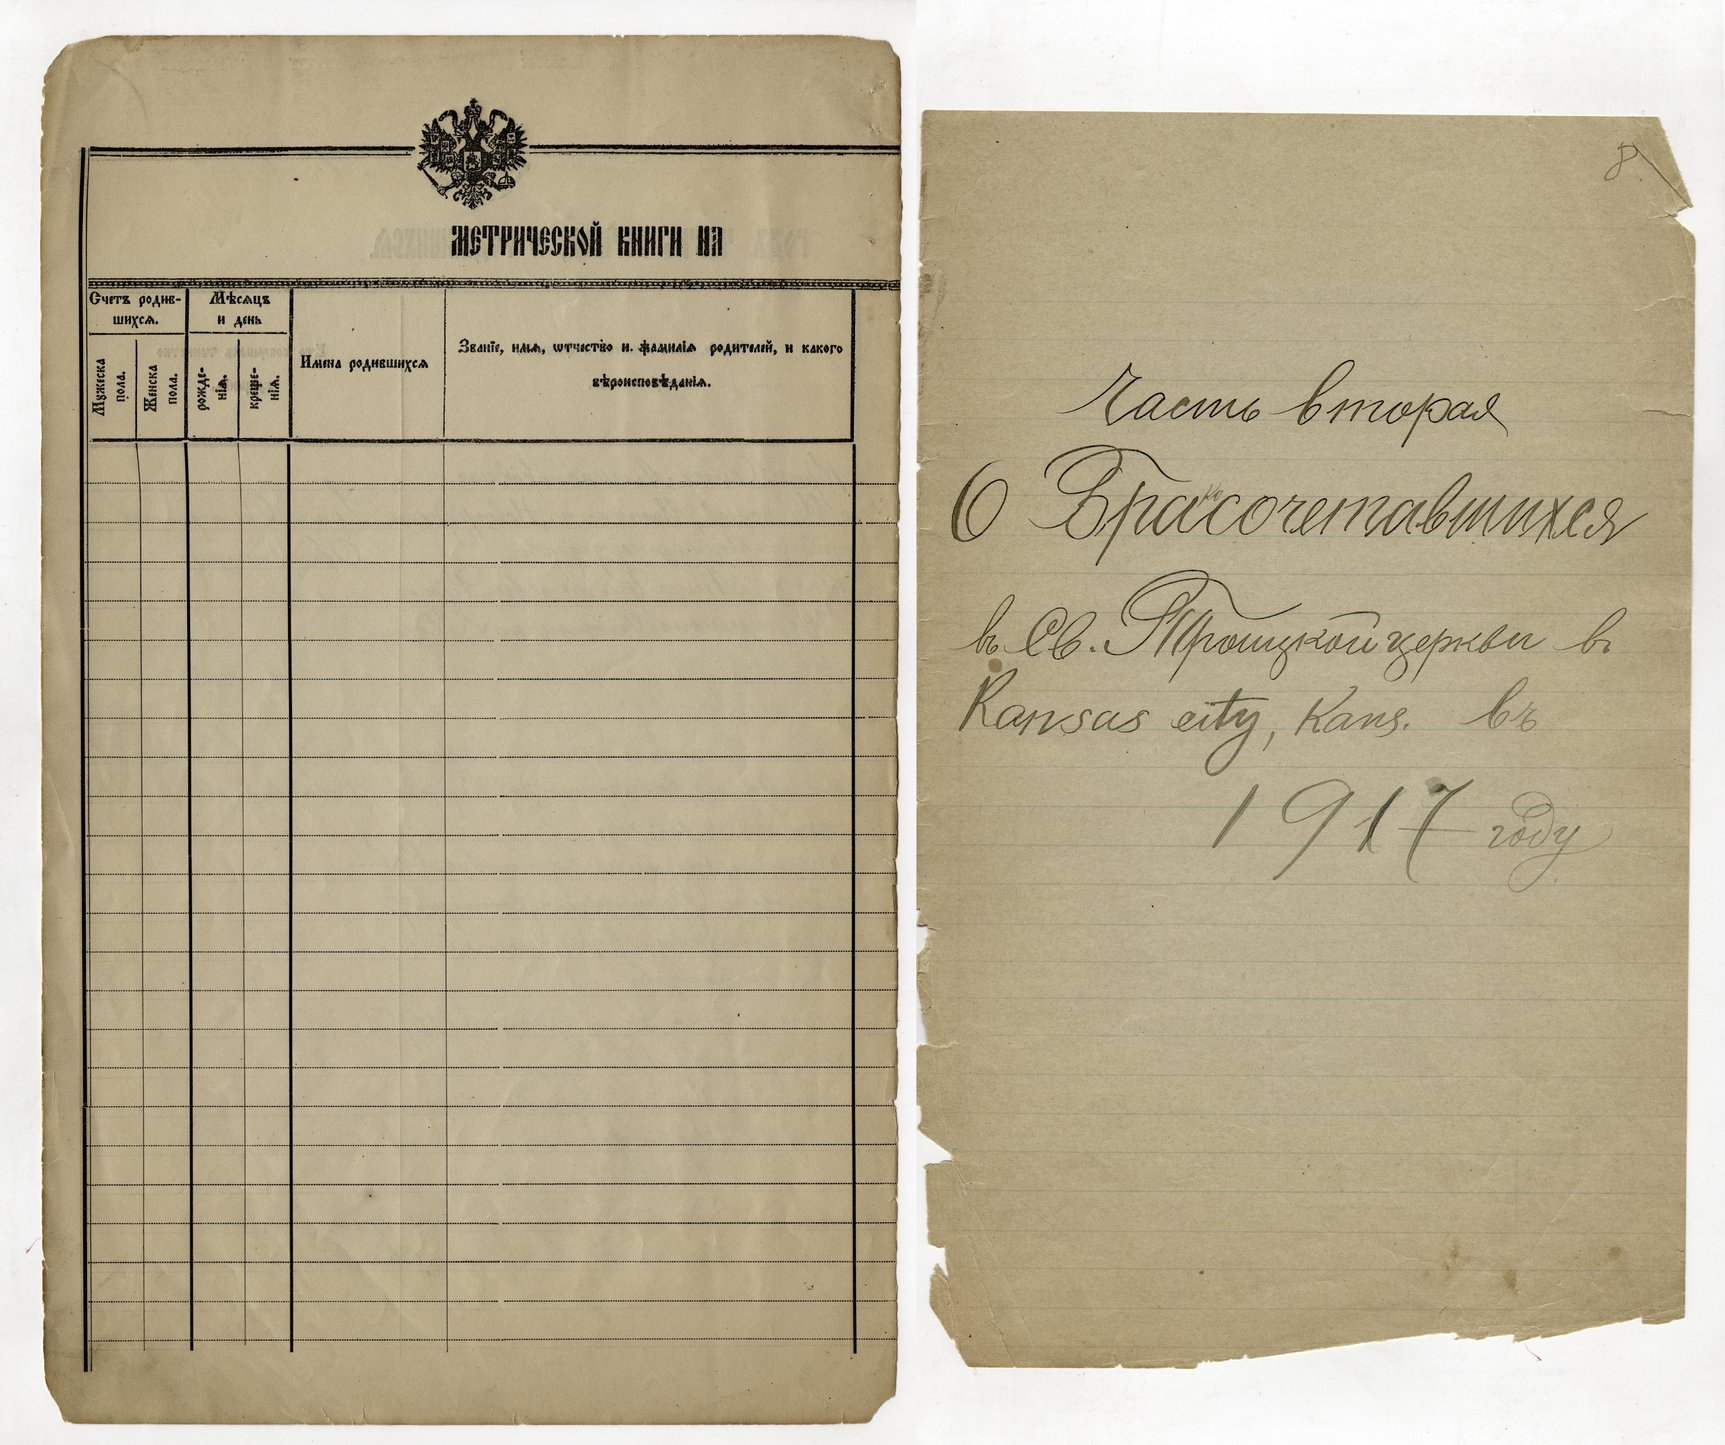 Birth, marriage and death register, Holy Trinity Russian Orthodox Church, Kansas City, Kansas - 1917 - 008 - Marriage